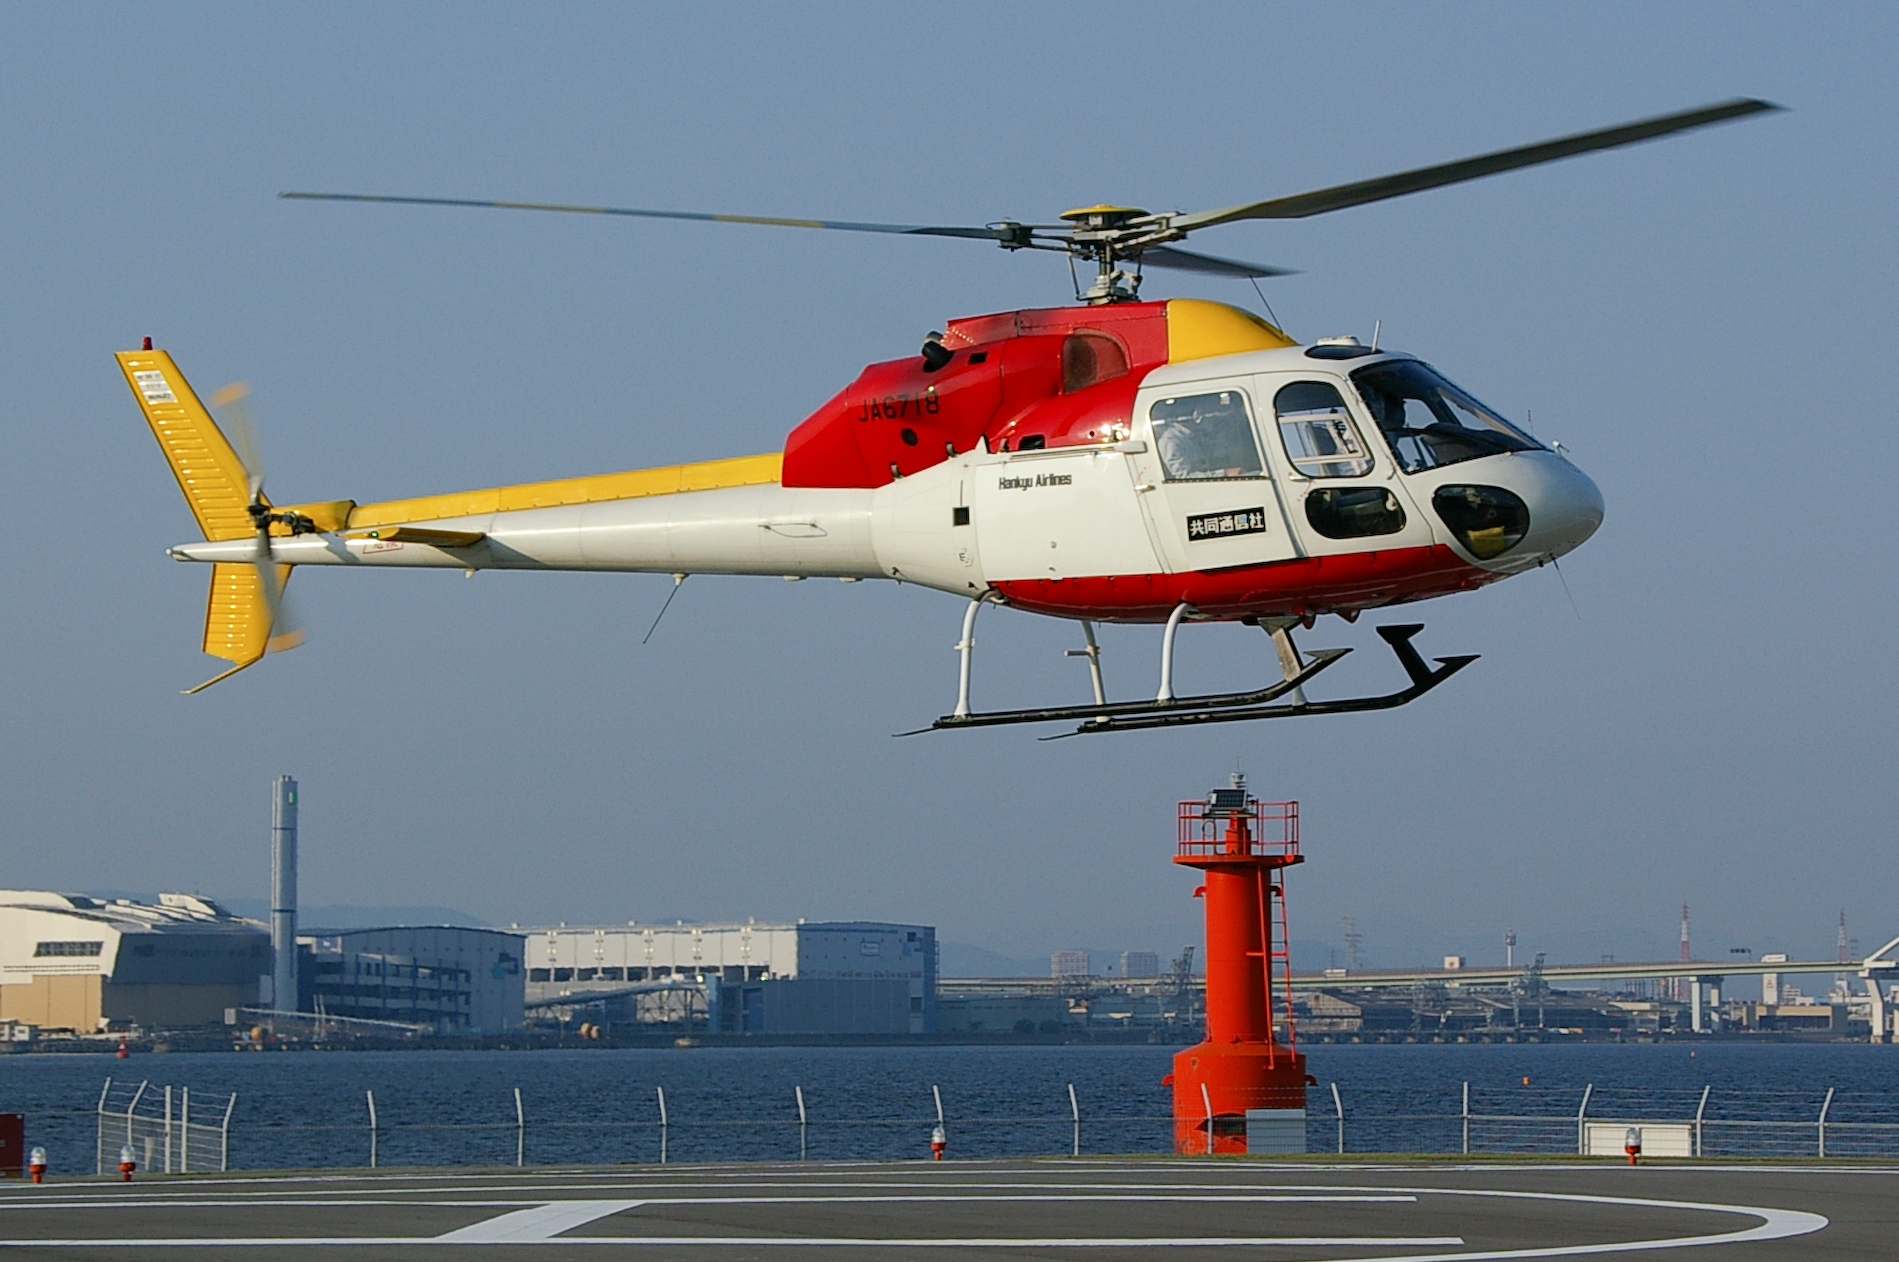 Eurocopter AS-355 Ecureuil 2 #03